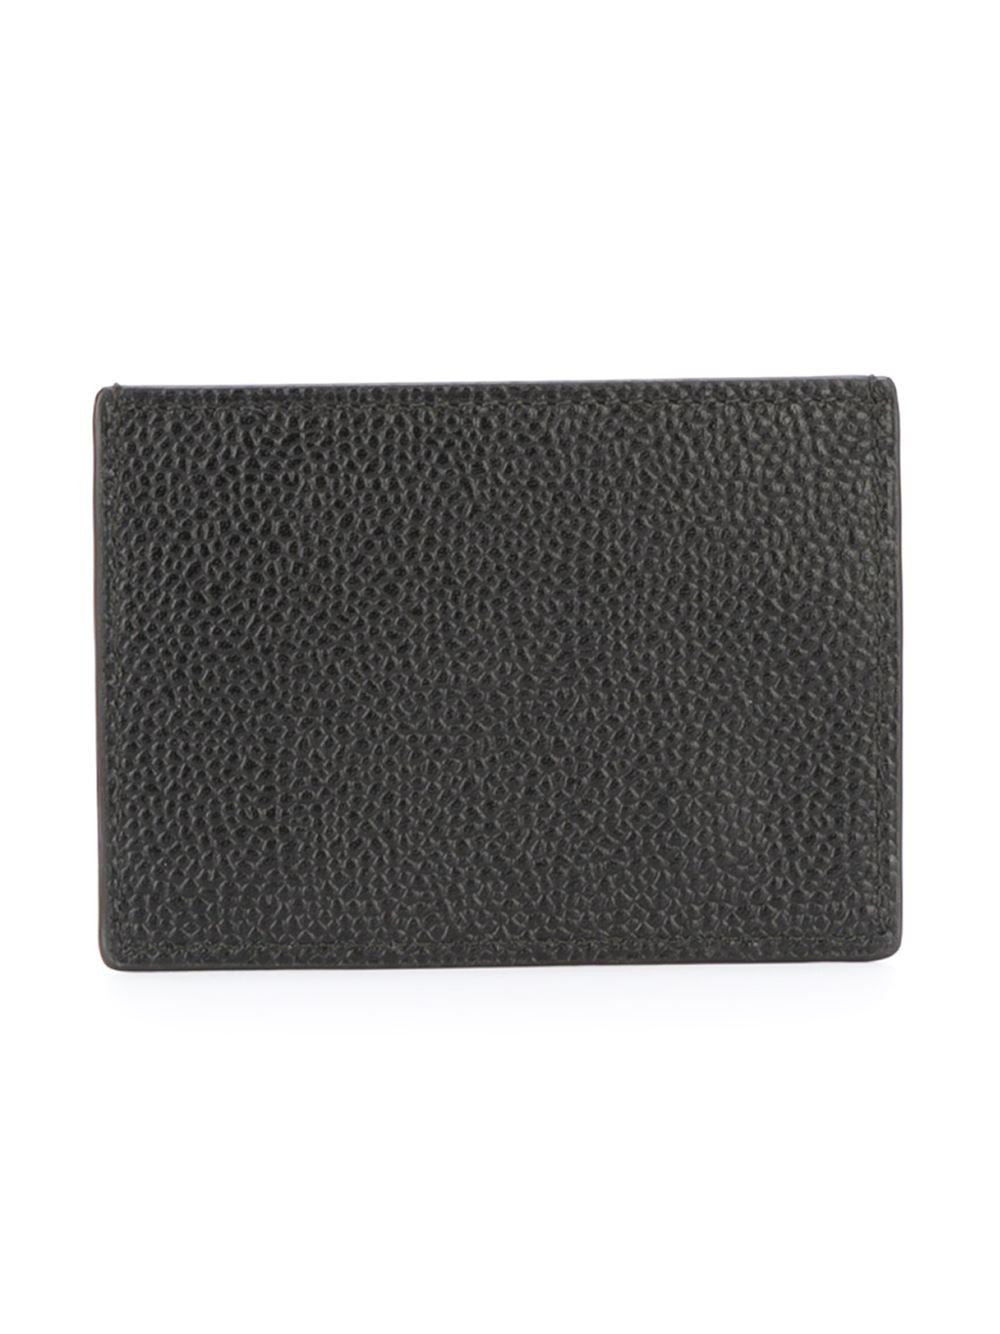 Small Pebble Grain Cardholder | MAW020L-00198-001